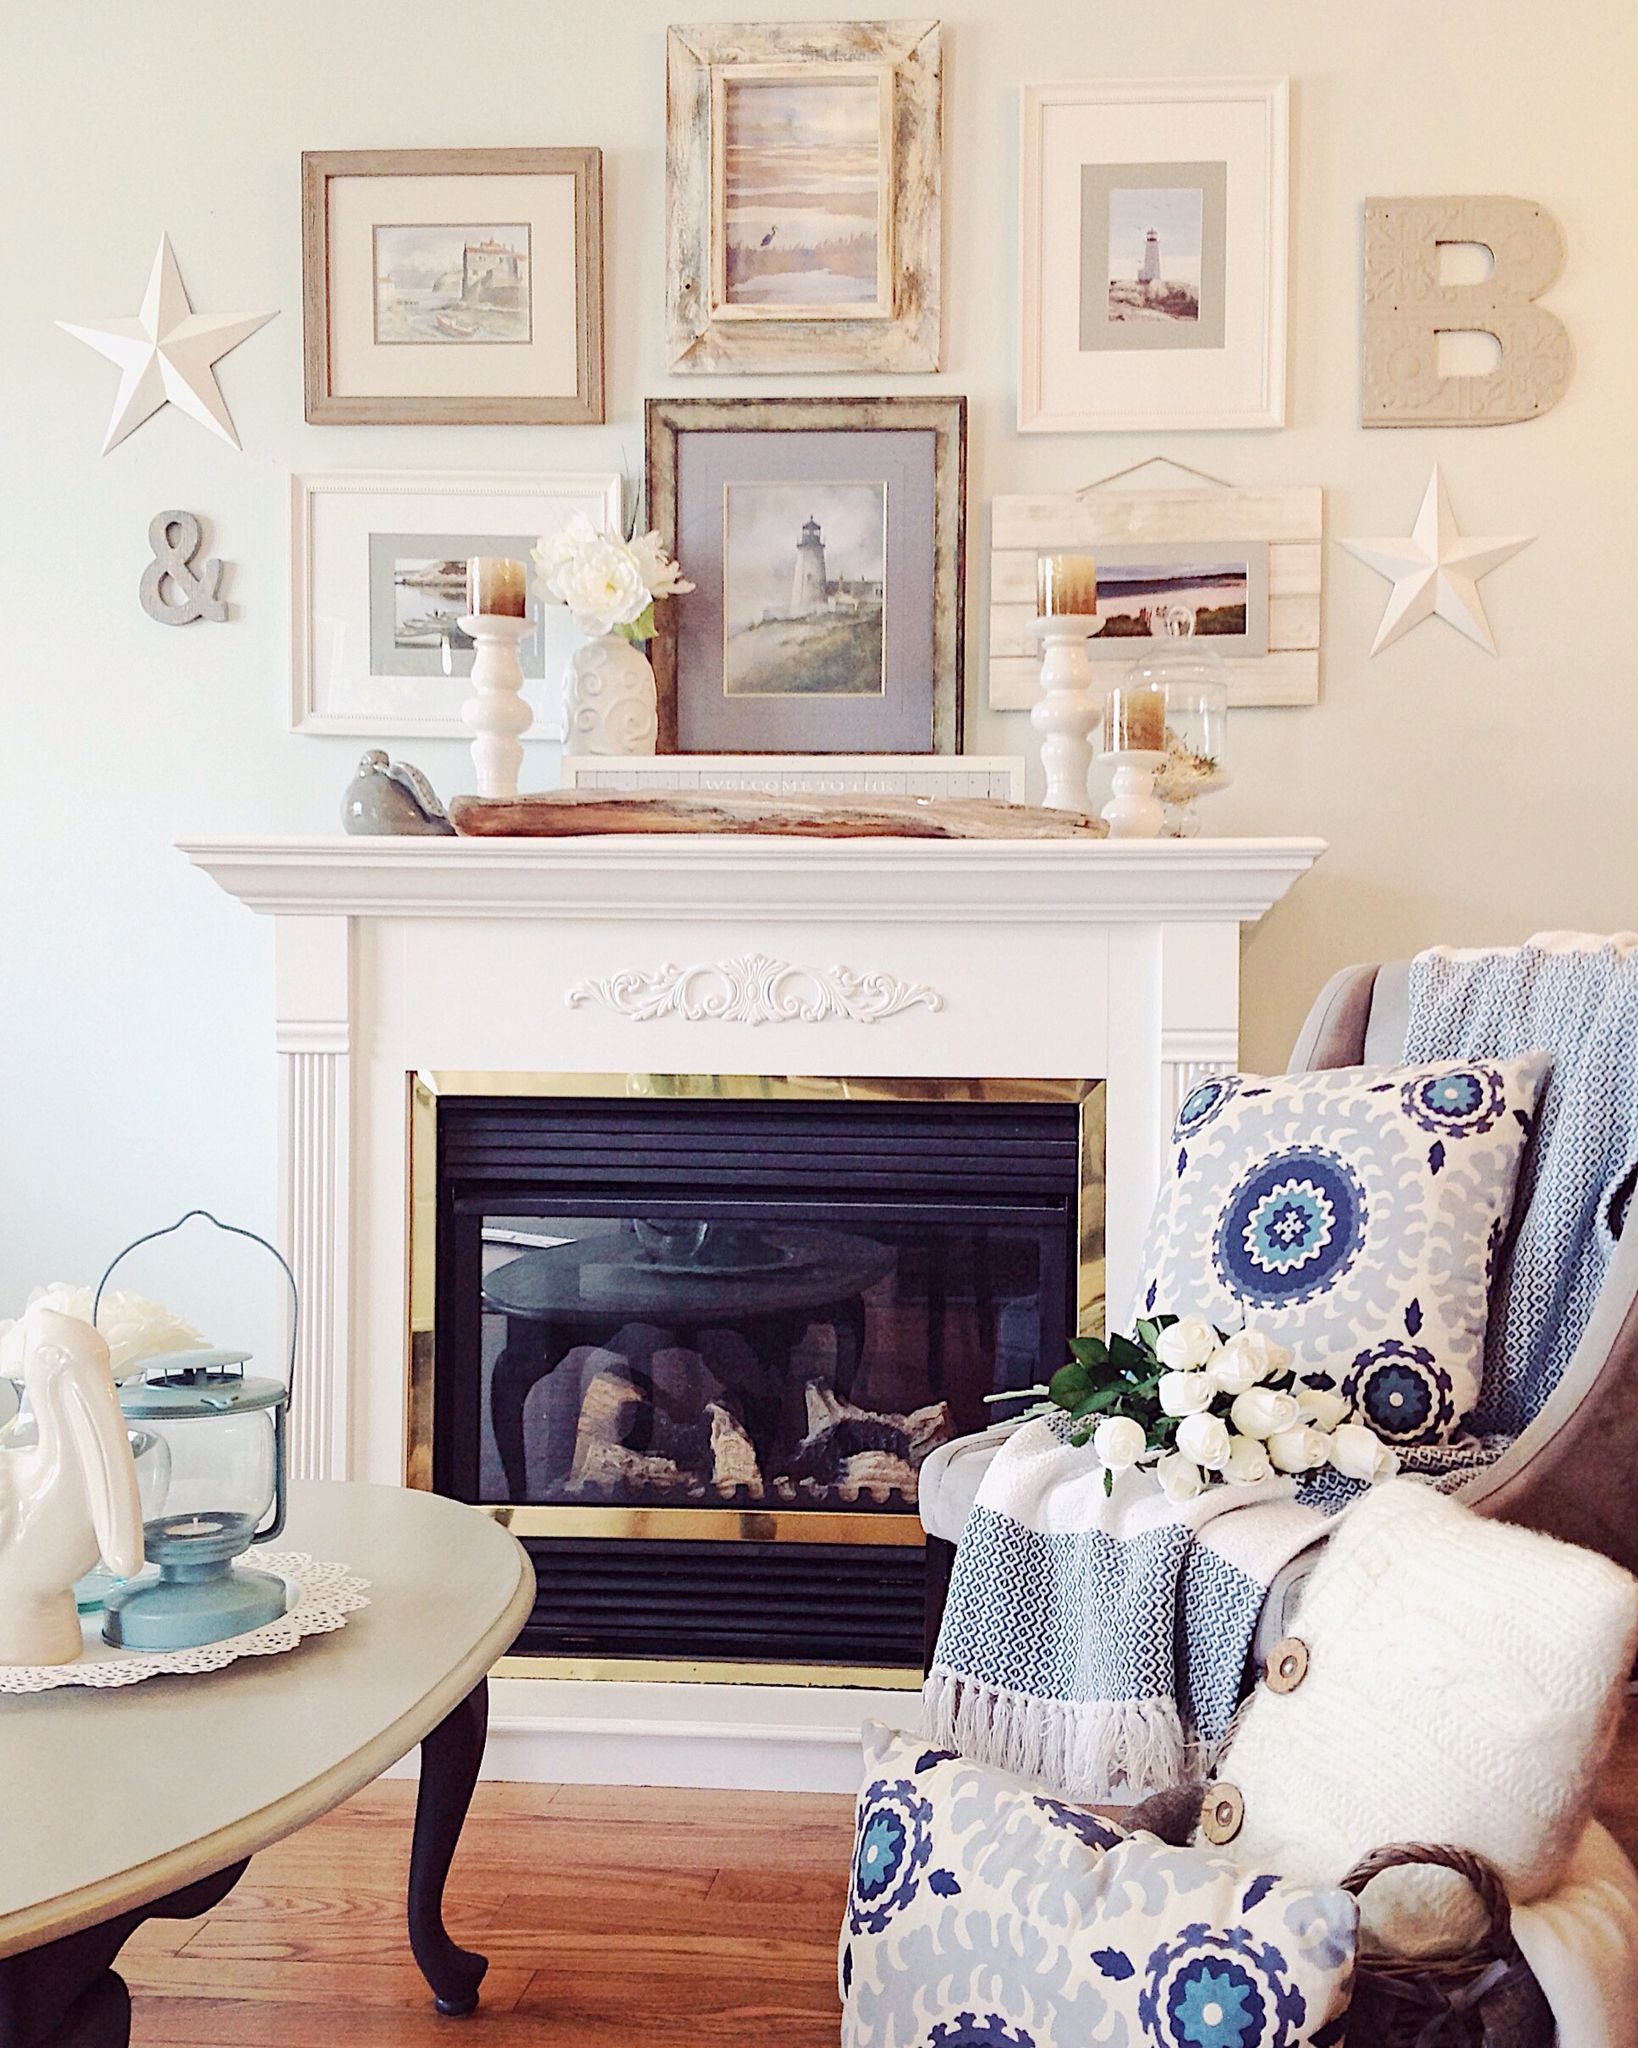 East Coast Fireplace Best Of Coastal Farmhouse Living Room with Restored Fireplace